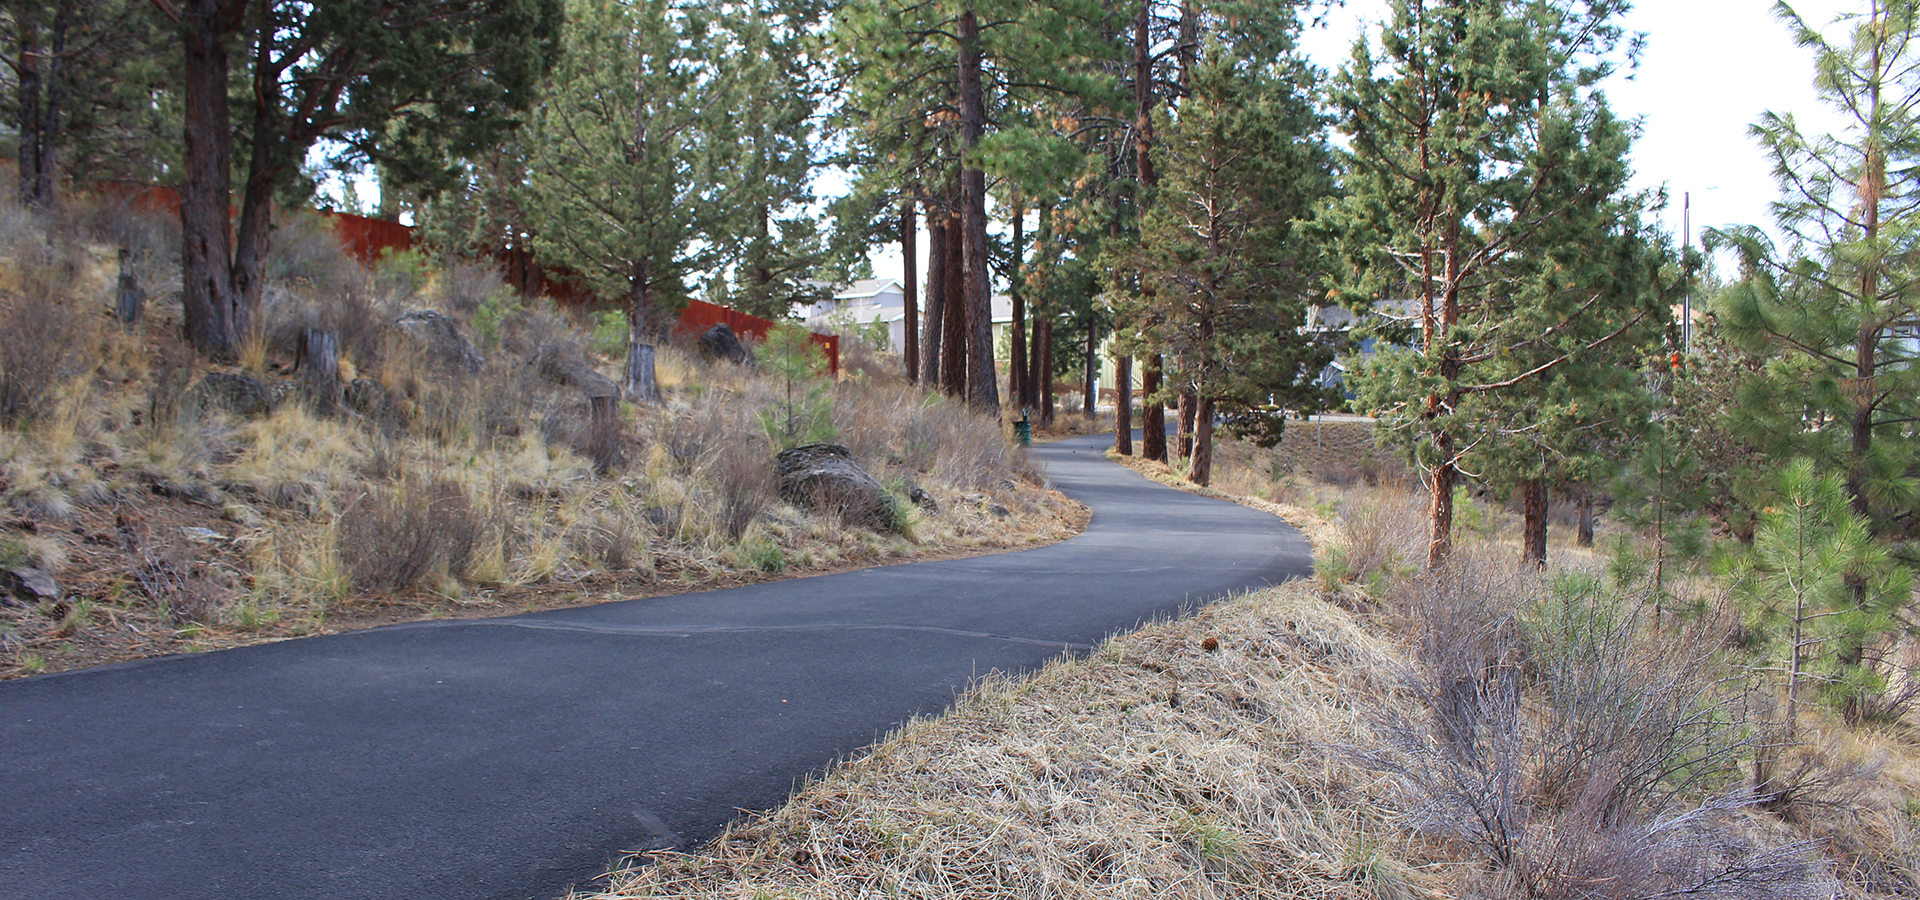 Image of the Cascades Highland Trail in Bend, Oregon.